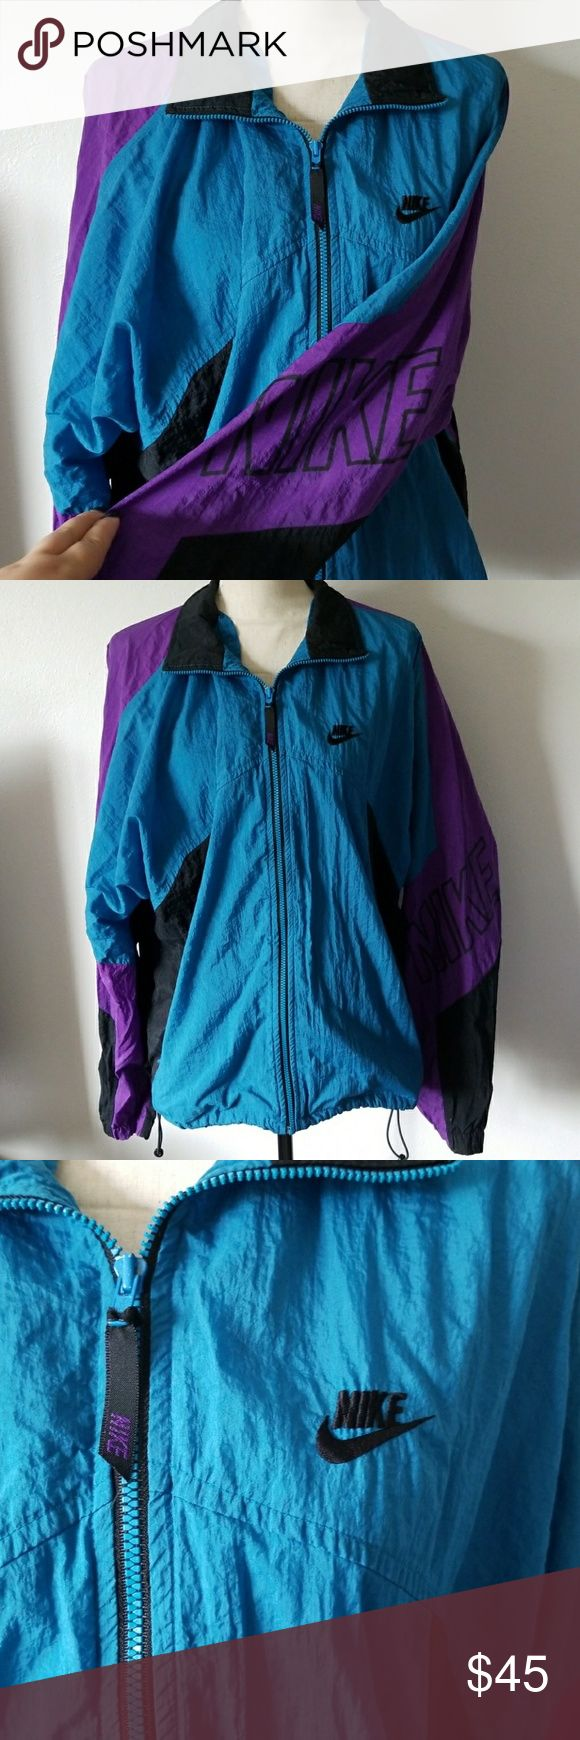 Vintage nike windbreaker In great used condition Nike Jackets & Coats